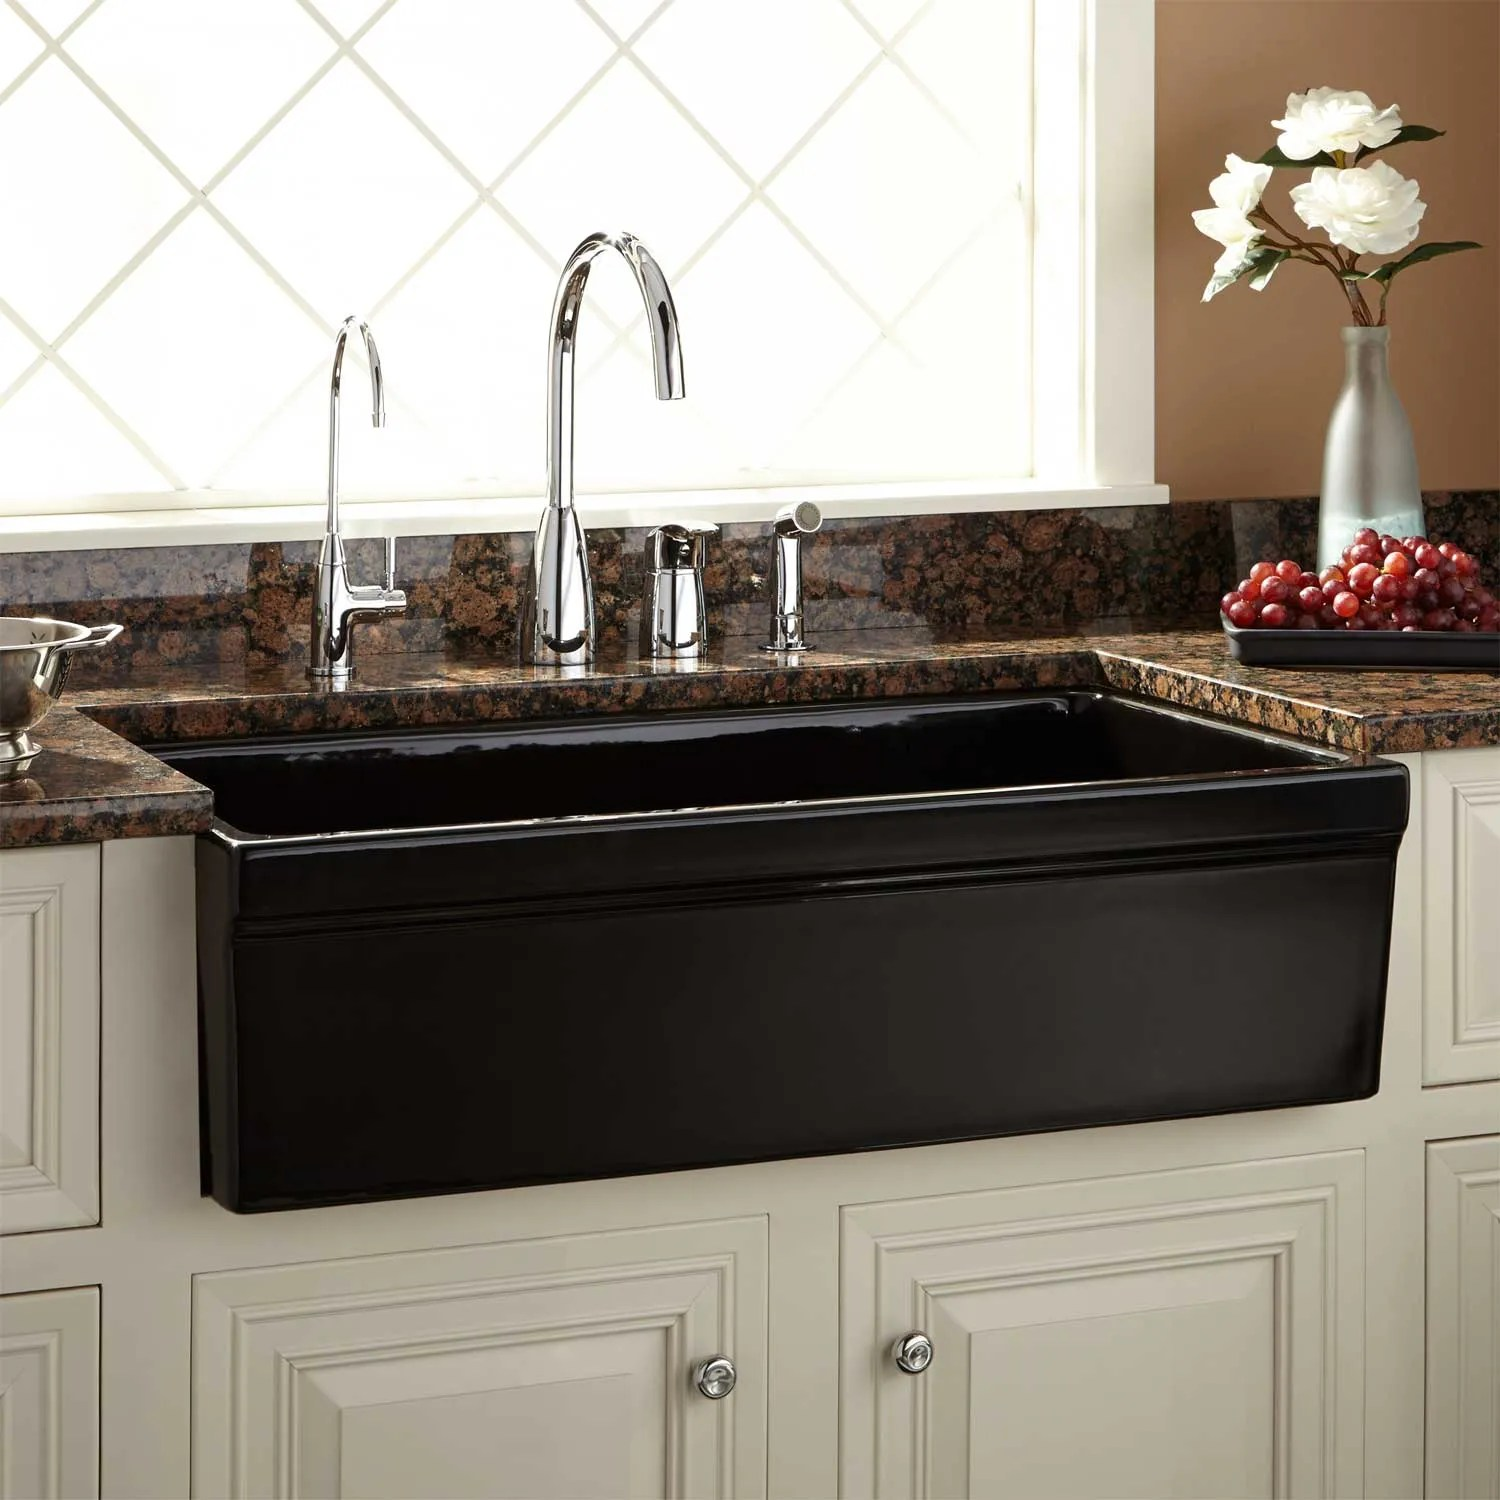 Latoscana Farmhouse Sink 36 33 Inch Fireclay Farm Sink Sinks Ideas